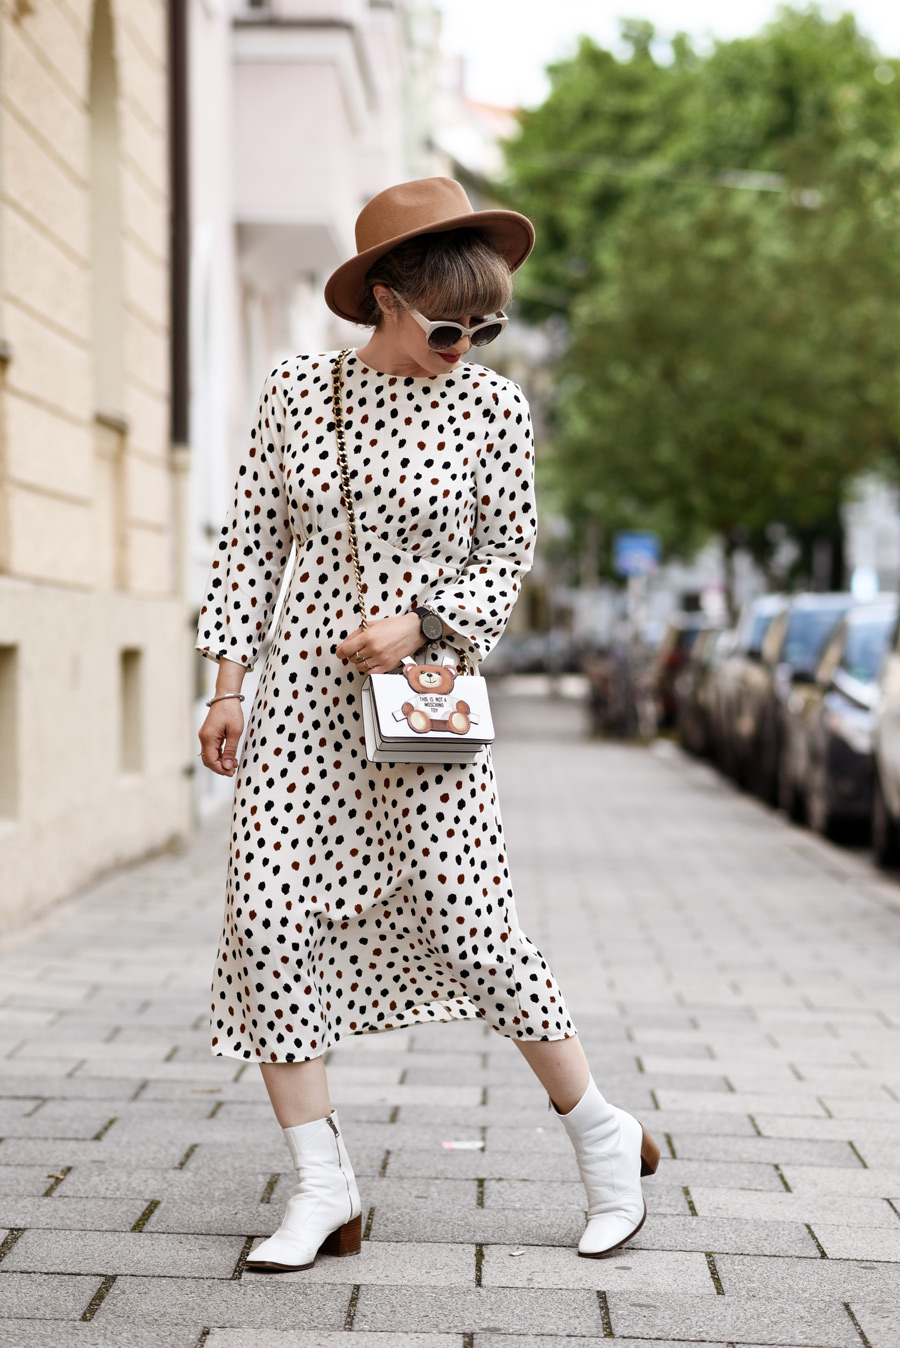 gepunktetes-kleid-midi-dress-fashionblogger-modeblogger-muenchen-style-punkte-dots-moschino-toy-streetstyle